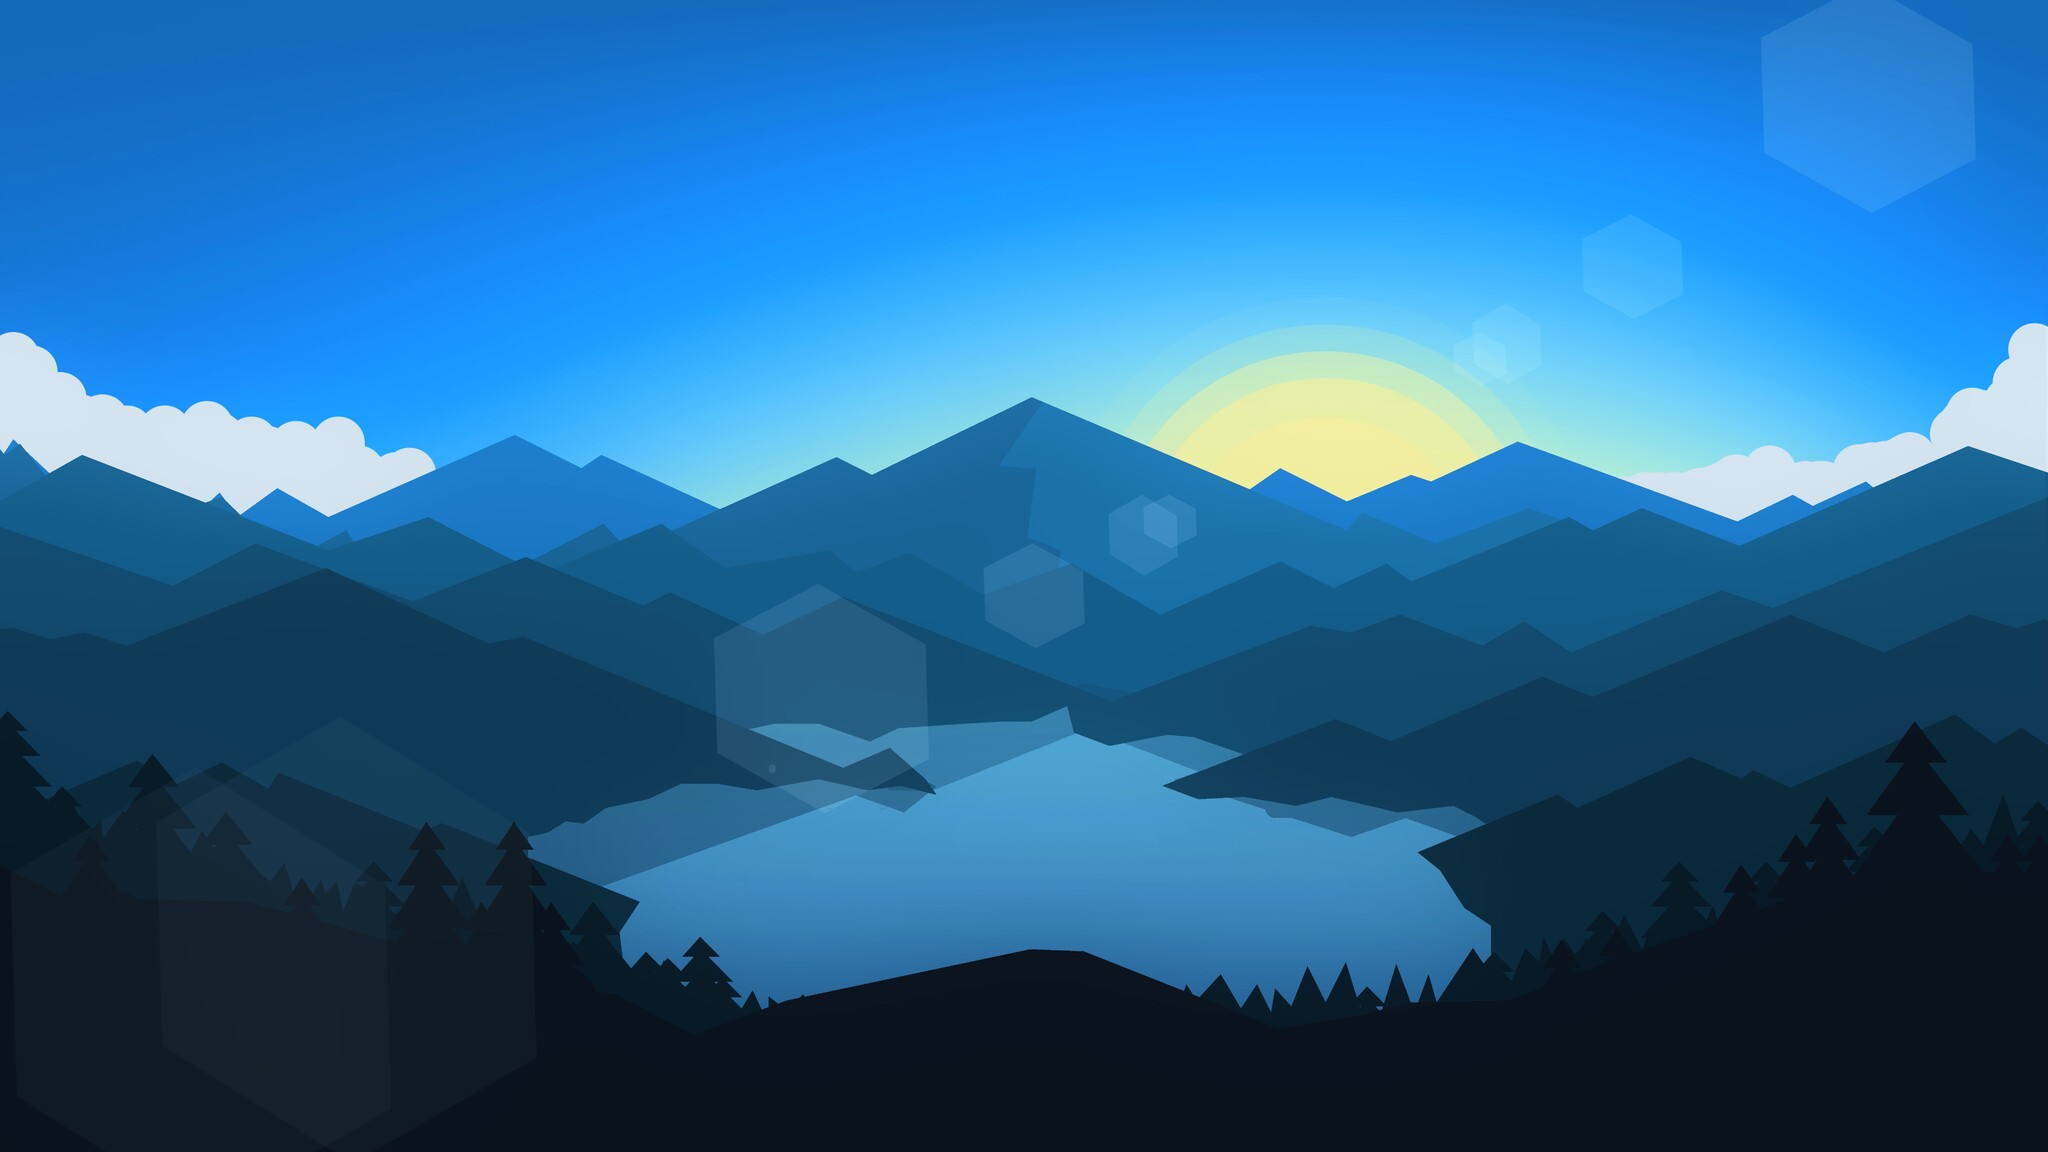 2048x1152 forest mountains sunset cool weather minimalism 2048x1152